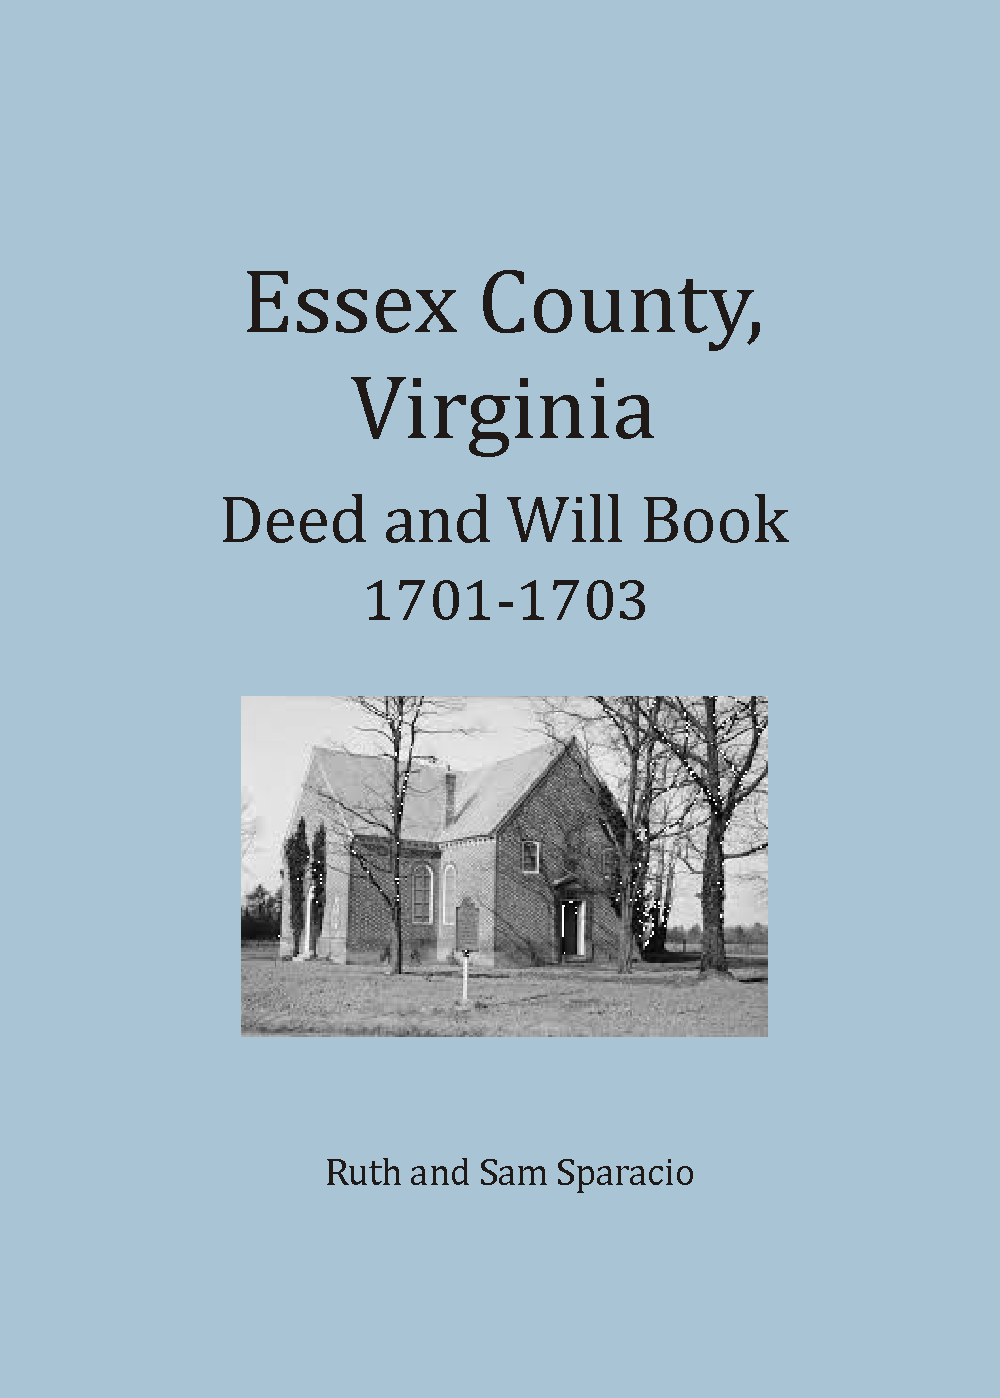 Essex County, Virginia Deed and Will Abstracts 1701-1703